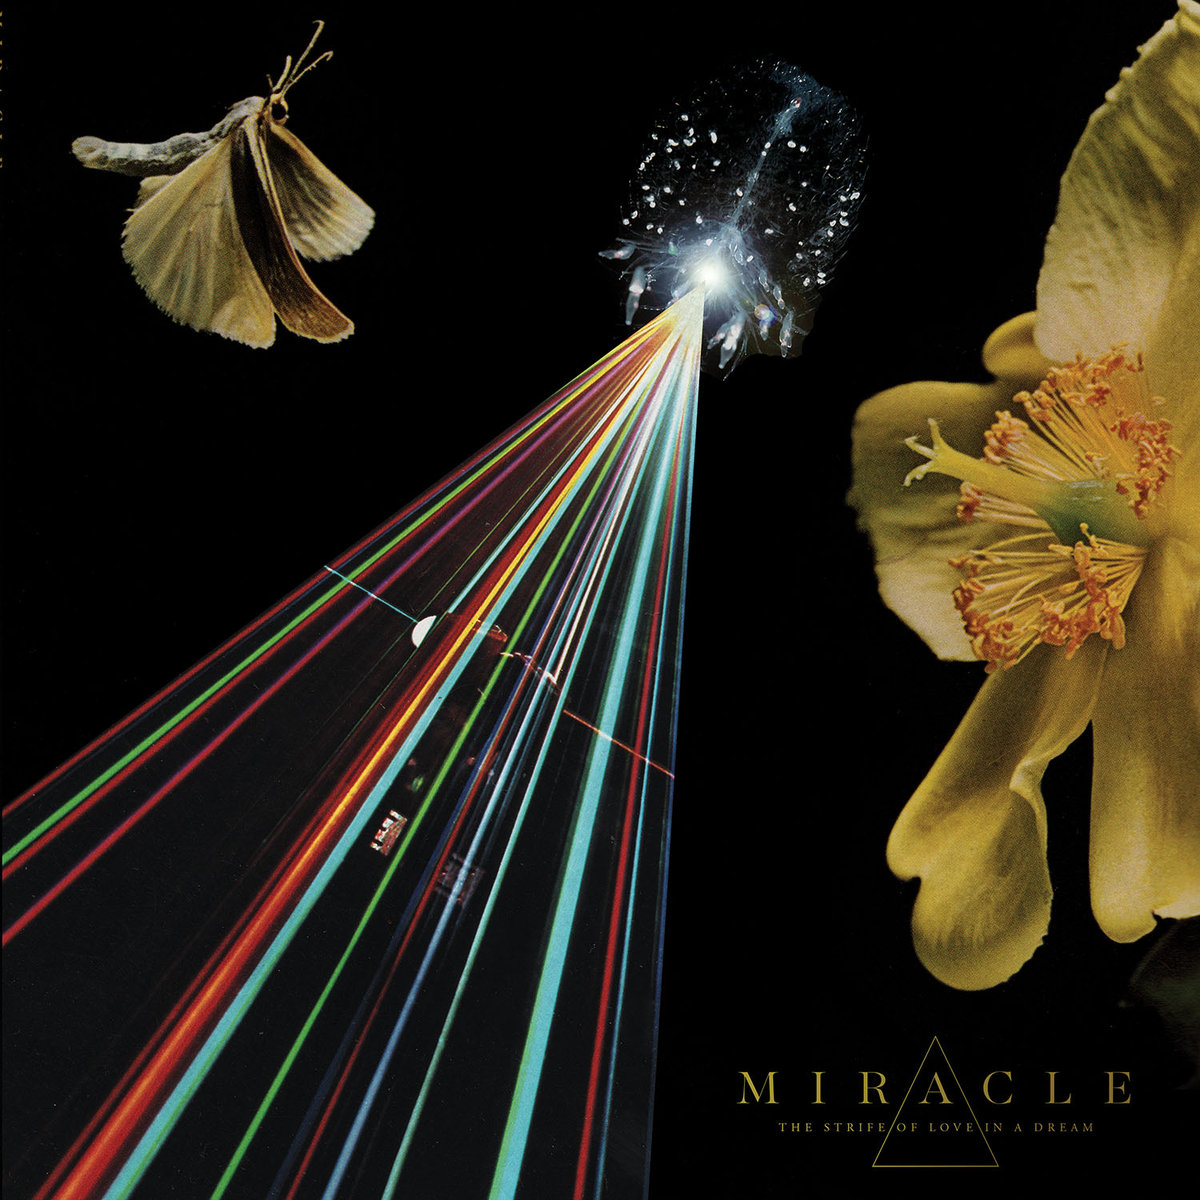 miracle-the-strife-of-love.jpg